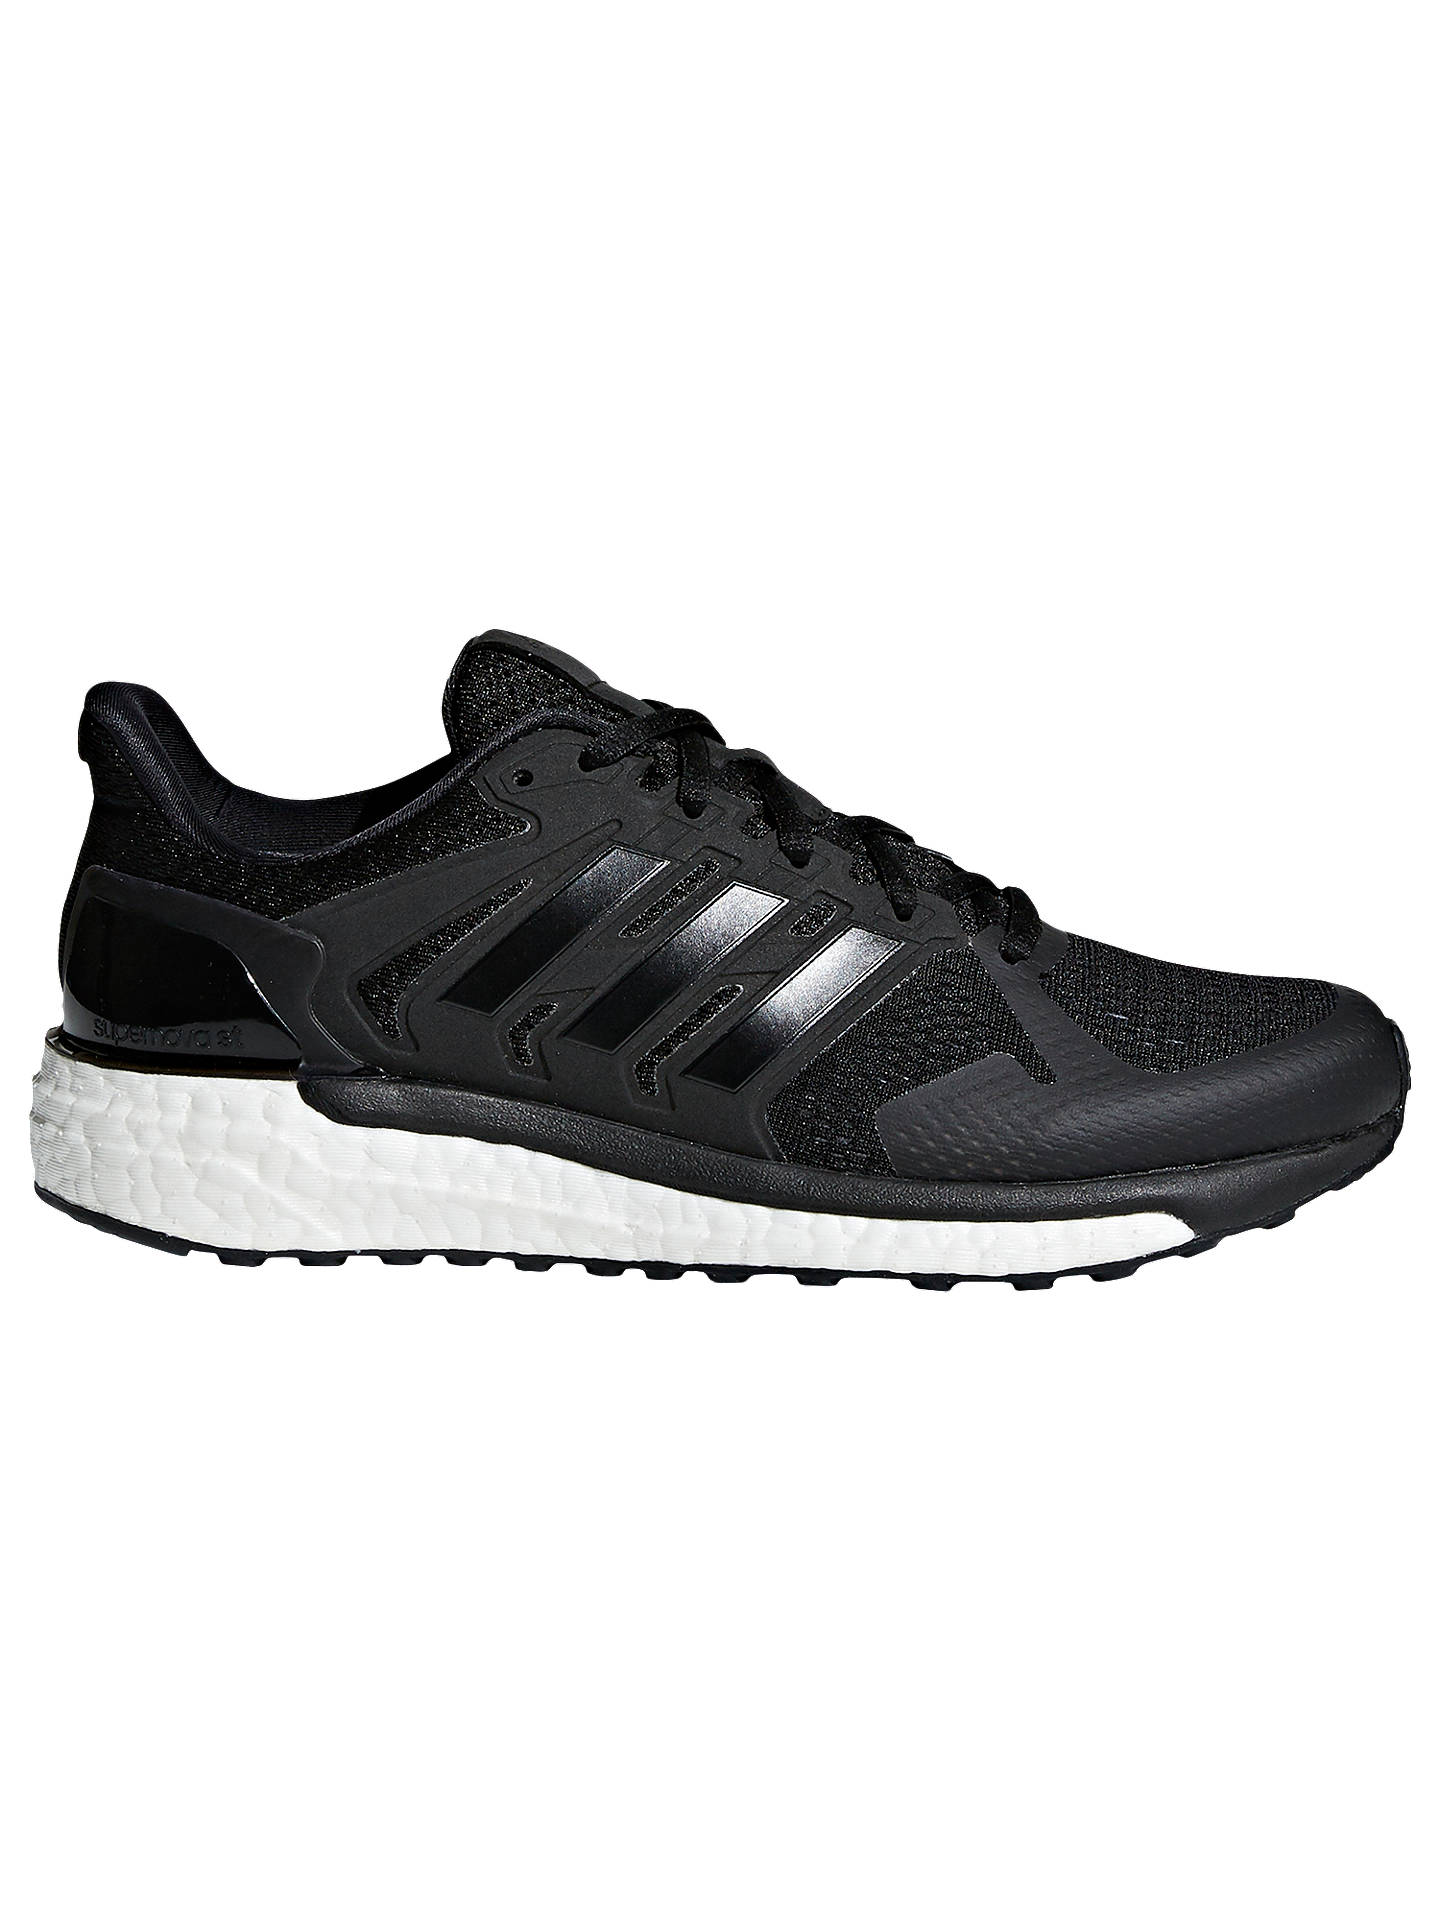 6f6cdb650cb1f adidas Supernova ST Women s Running Shoes at John Lewis   Partners